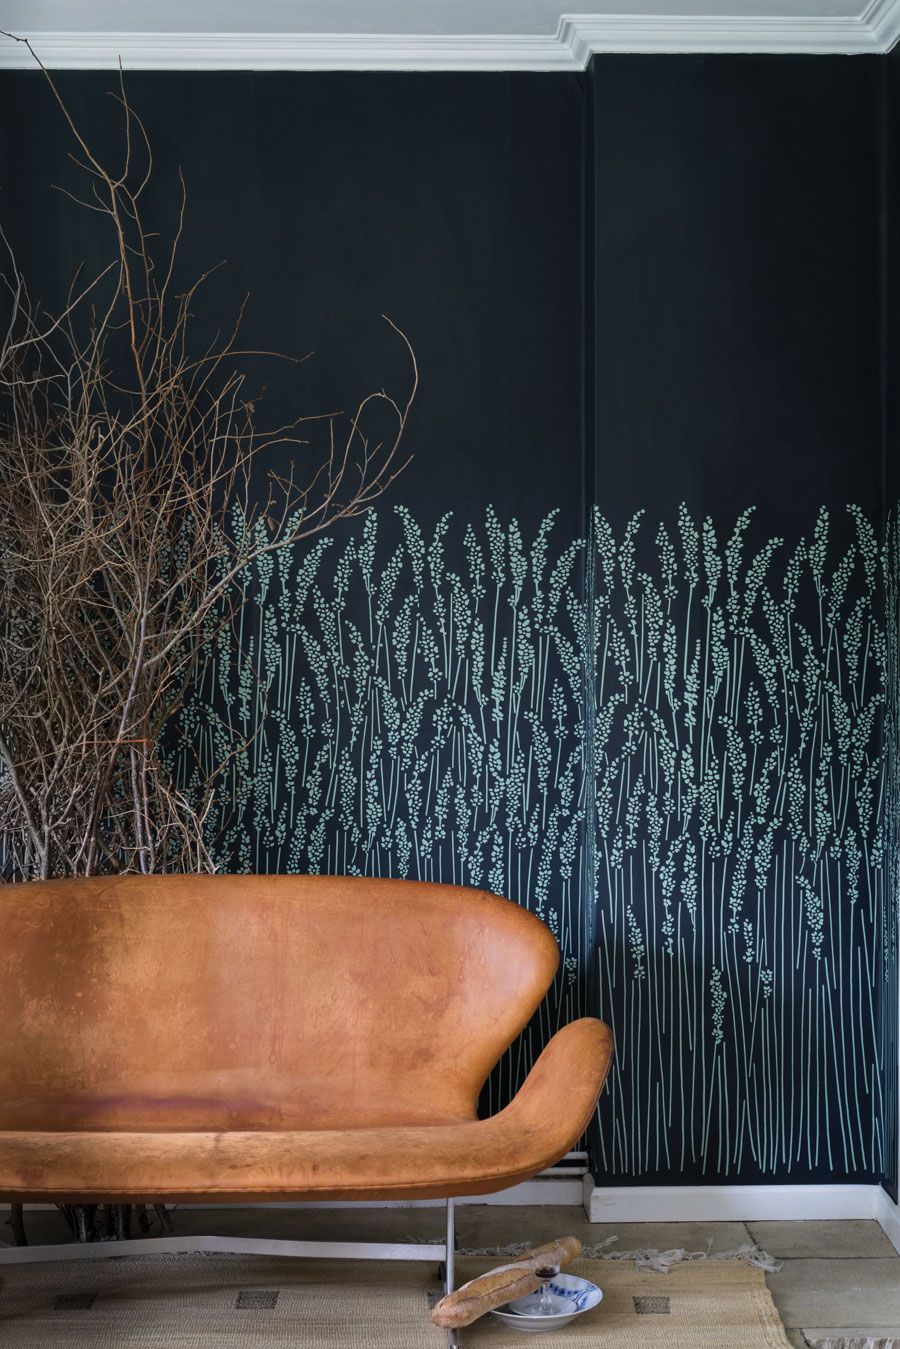 Farrow and ball paint online - Feather Grass Wallpaper By Farrow And Ball